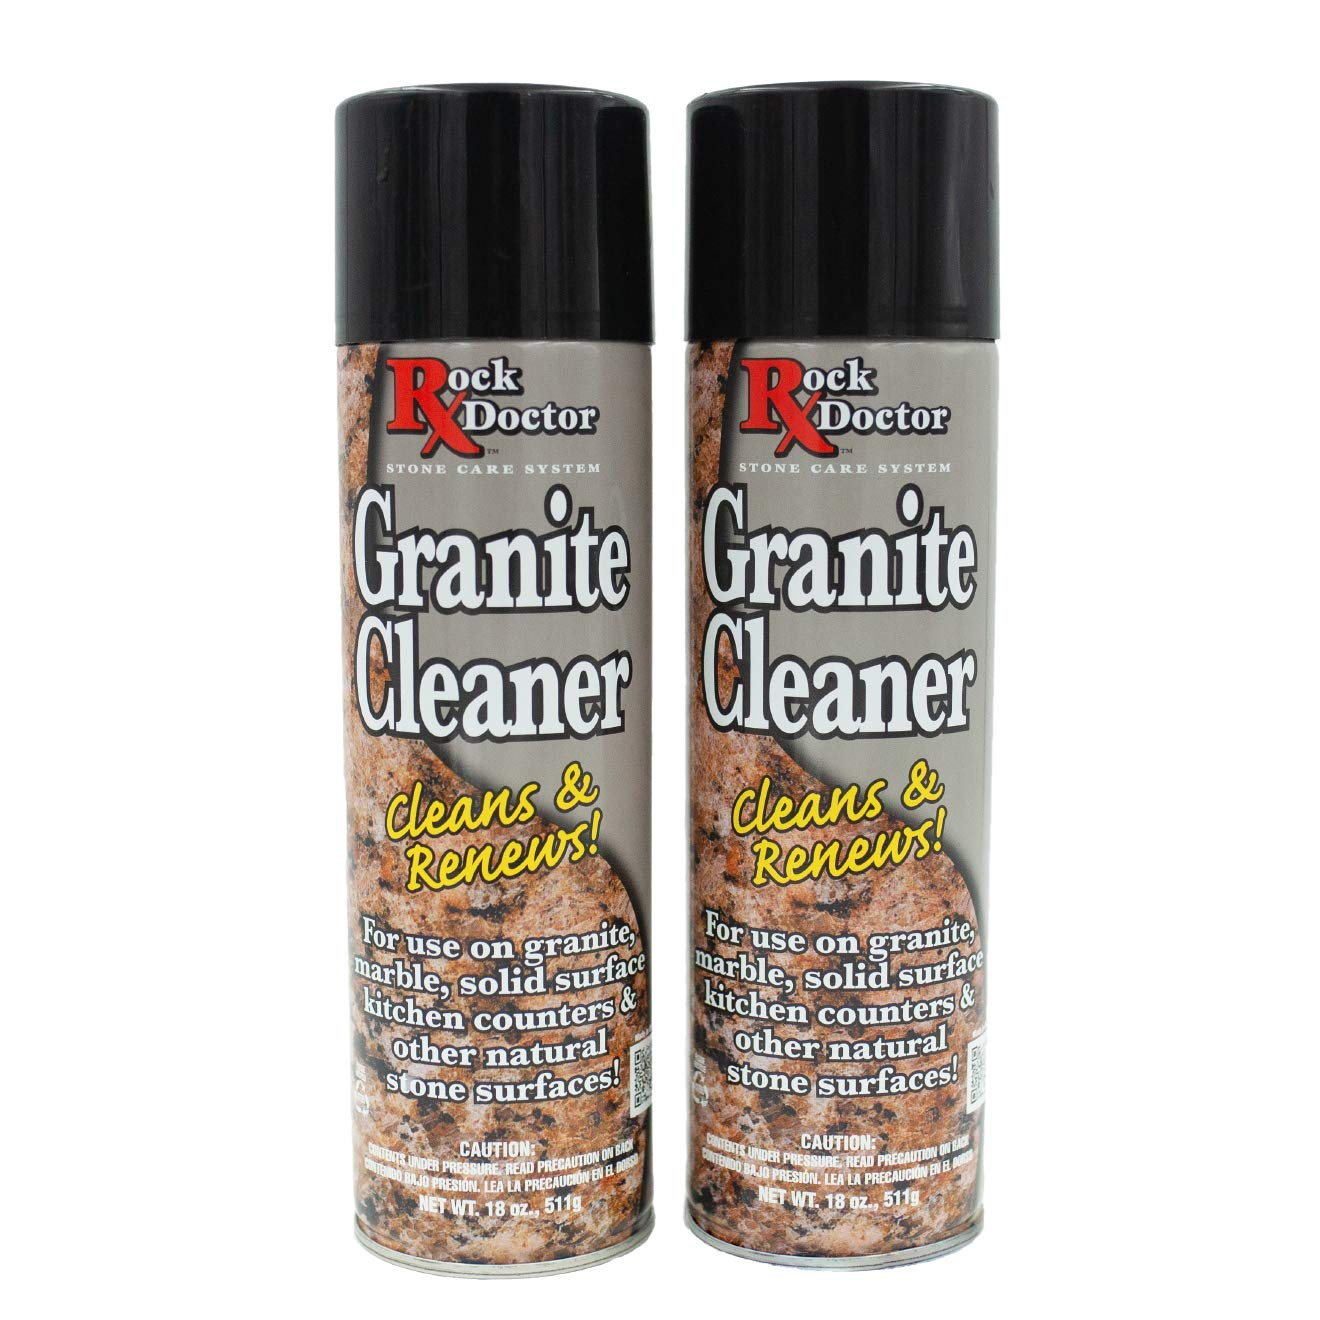 Rock Doctor Granite Cleaner - Cleans& Renews Surfaces - (18 oz) Surface Cleaner Spray, Granite/Marble Countertop Cleaner, Cleaning Spray for Vanity, Table Top, Kitchen Counters, Stone Surfaces (2Pack) by Rock Doctor